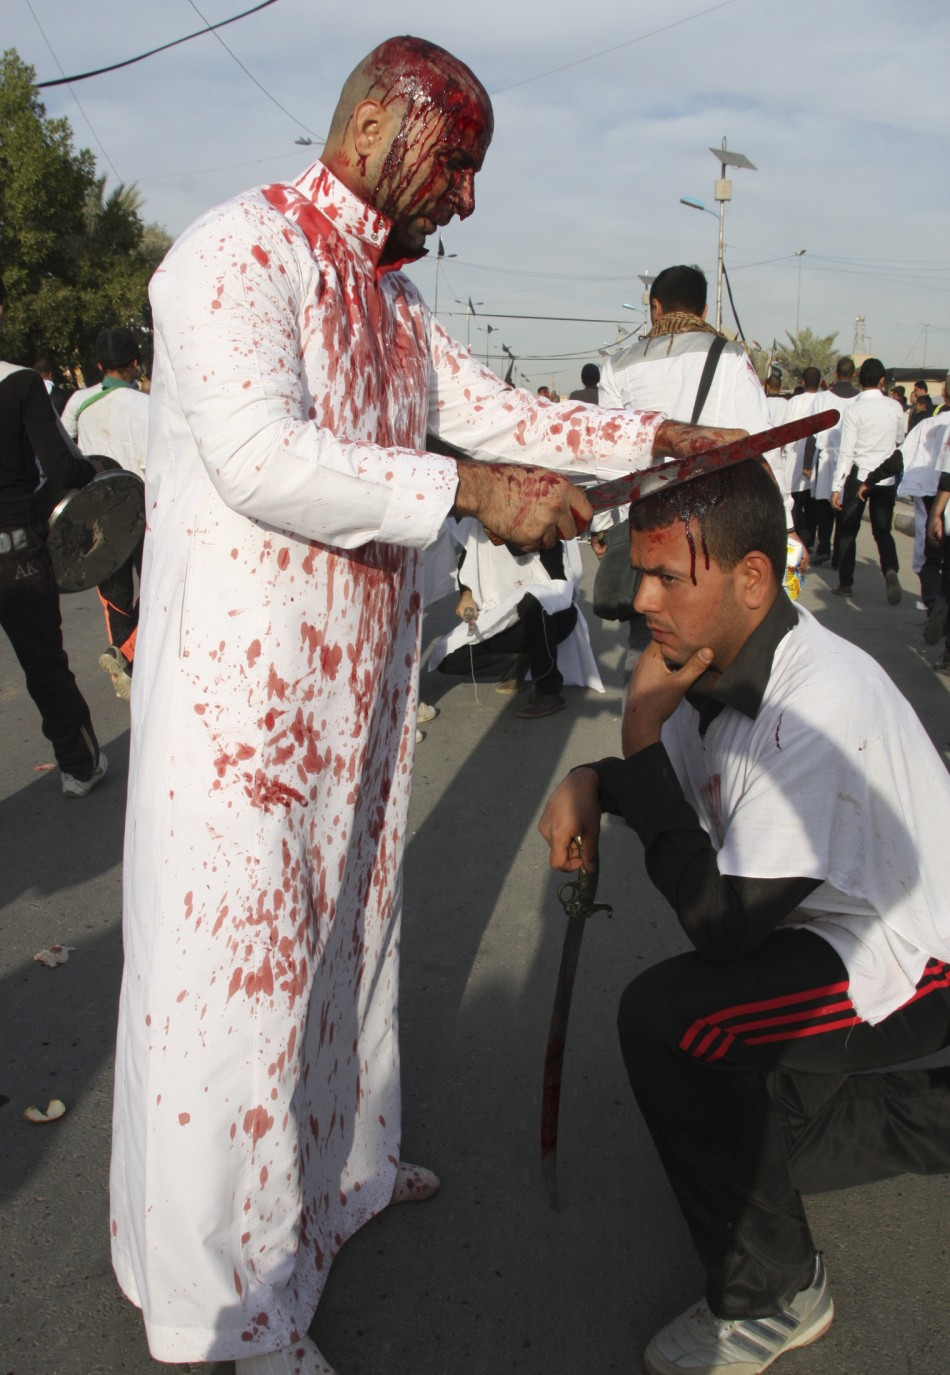 Shi'ite Iraqi men covered in blood take part in the Ashura procession in Baghdad's Sadr City